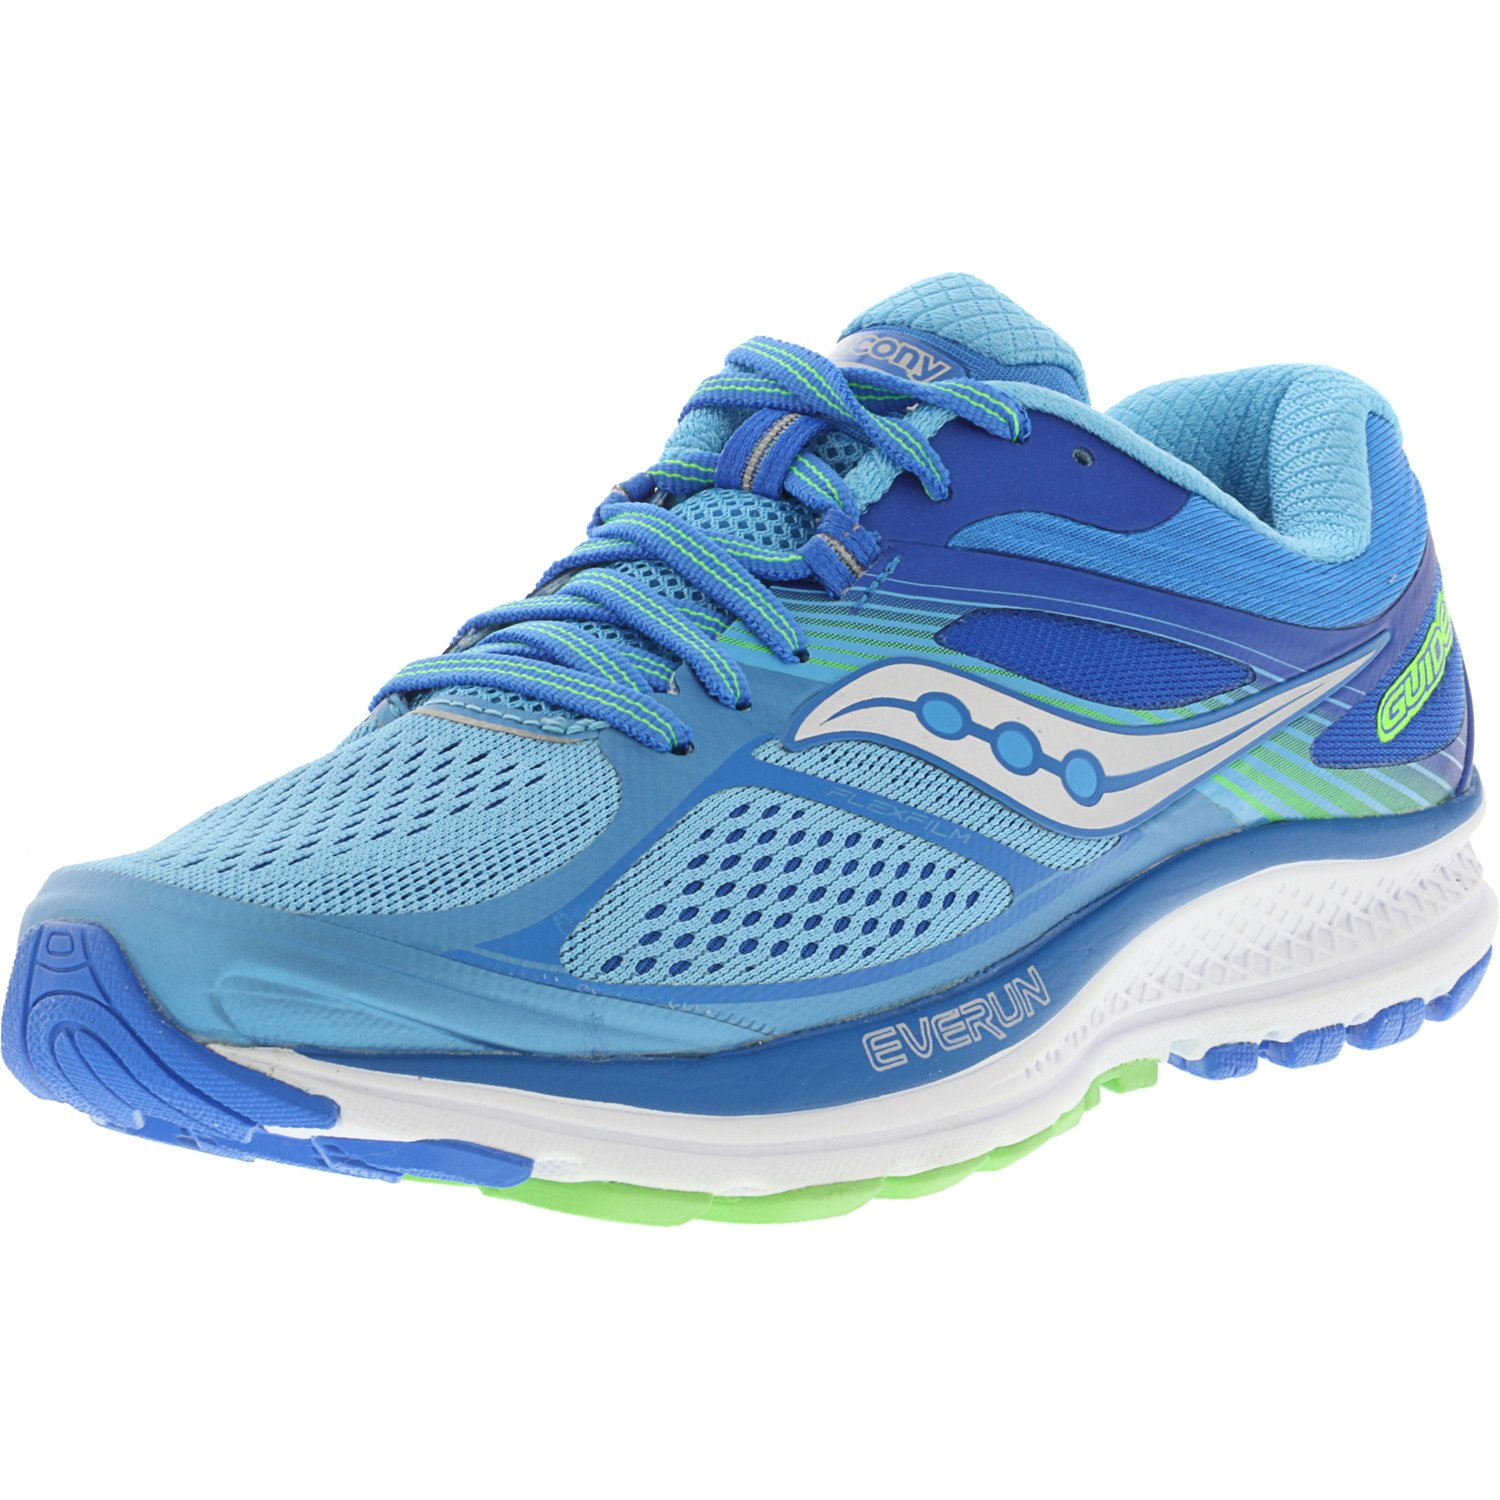 Saucony Women's Guide 10 Light Blue   Ankle-High Running Shoe 7W by Saucony